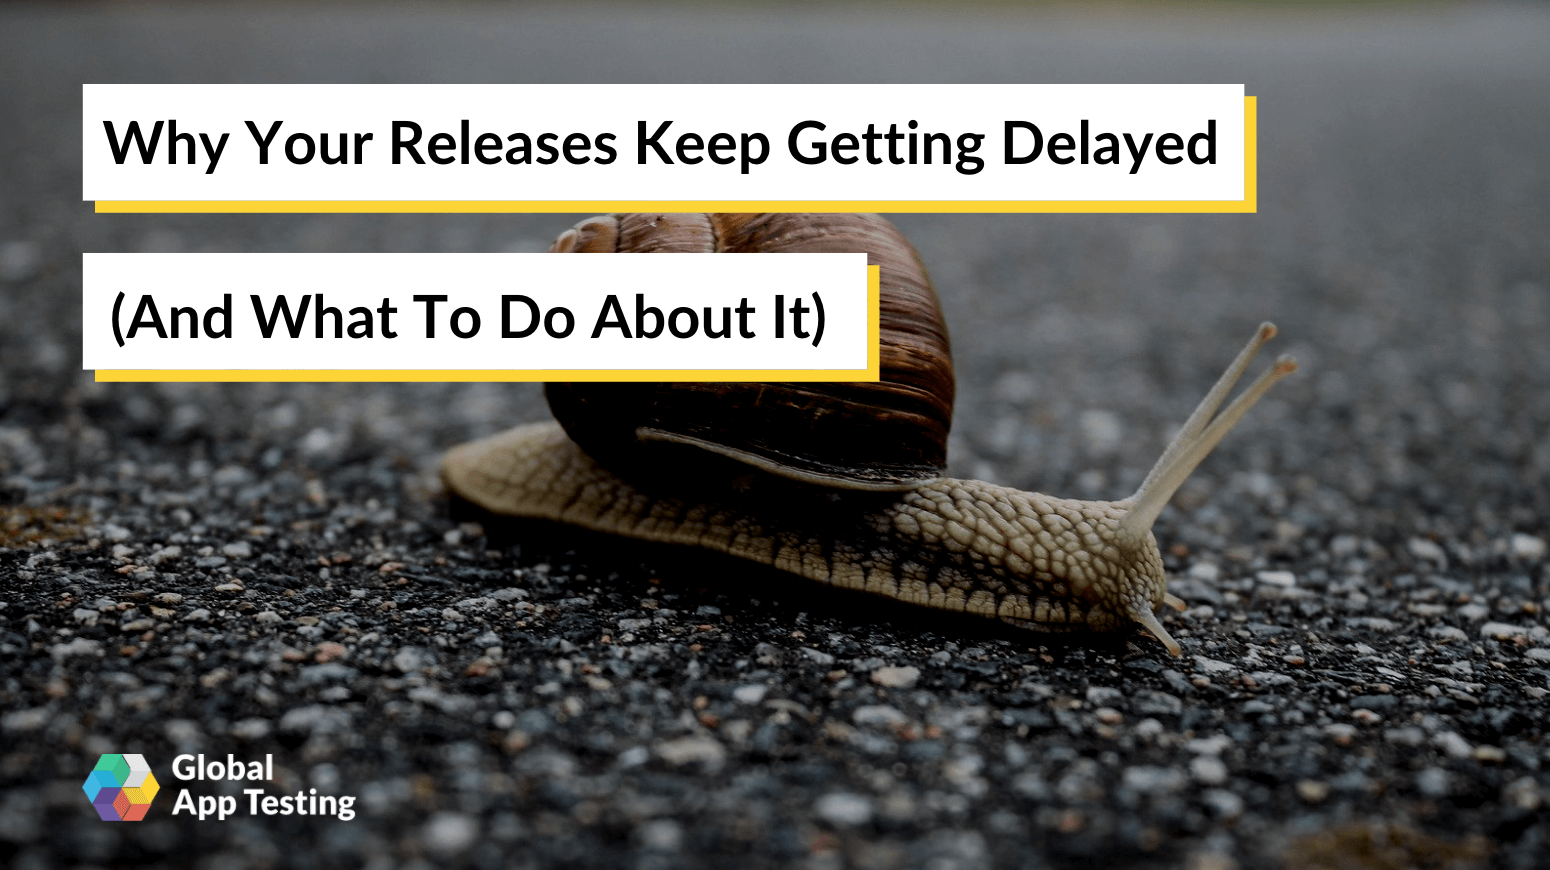 Why Your Releases Keep Getting Delayed – and What to Do About It